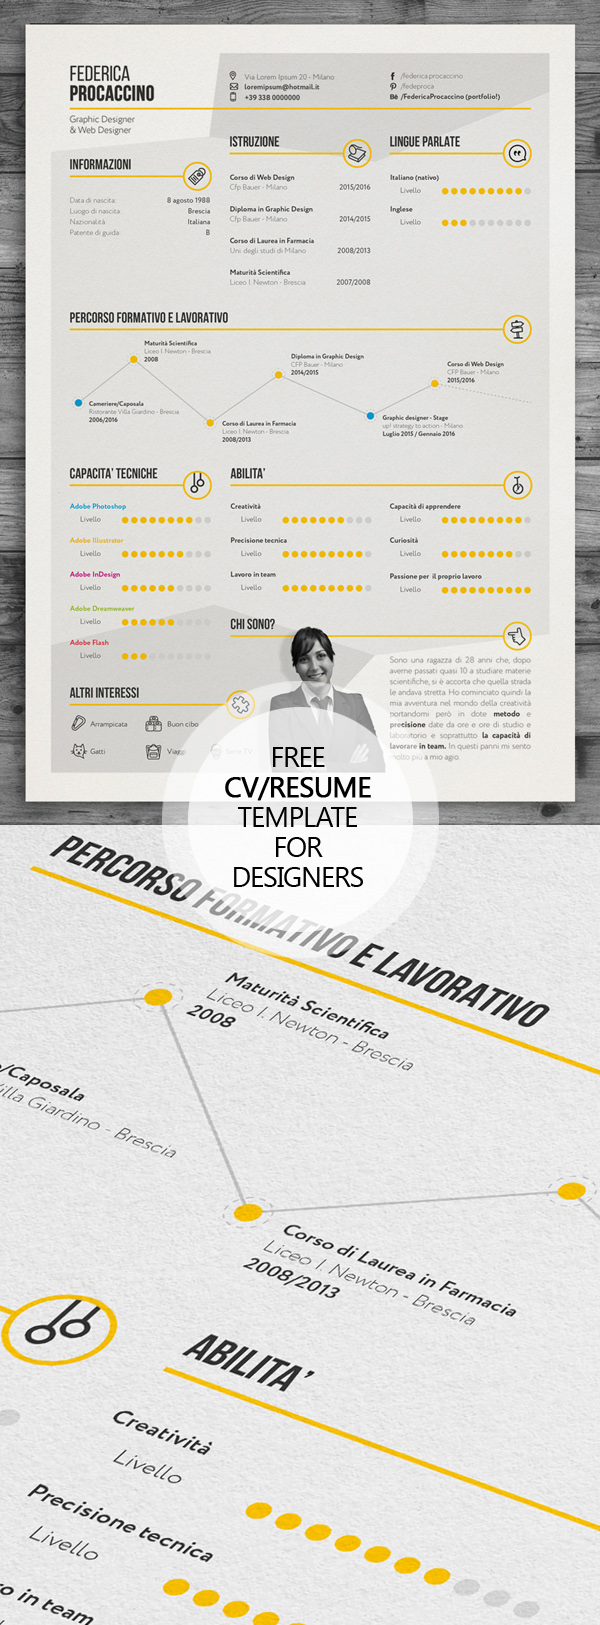 06 Free Creative Freelancer Designer Resume Template (PSD)